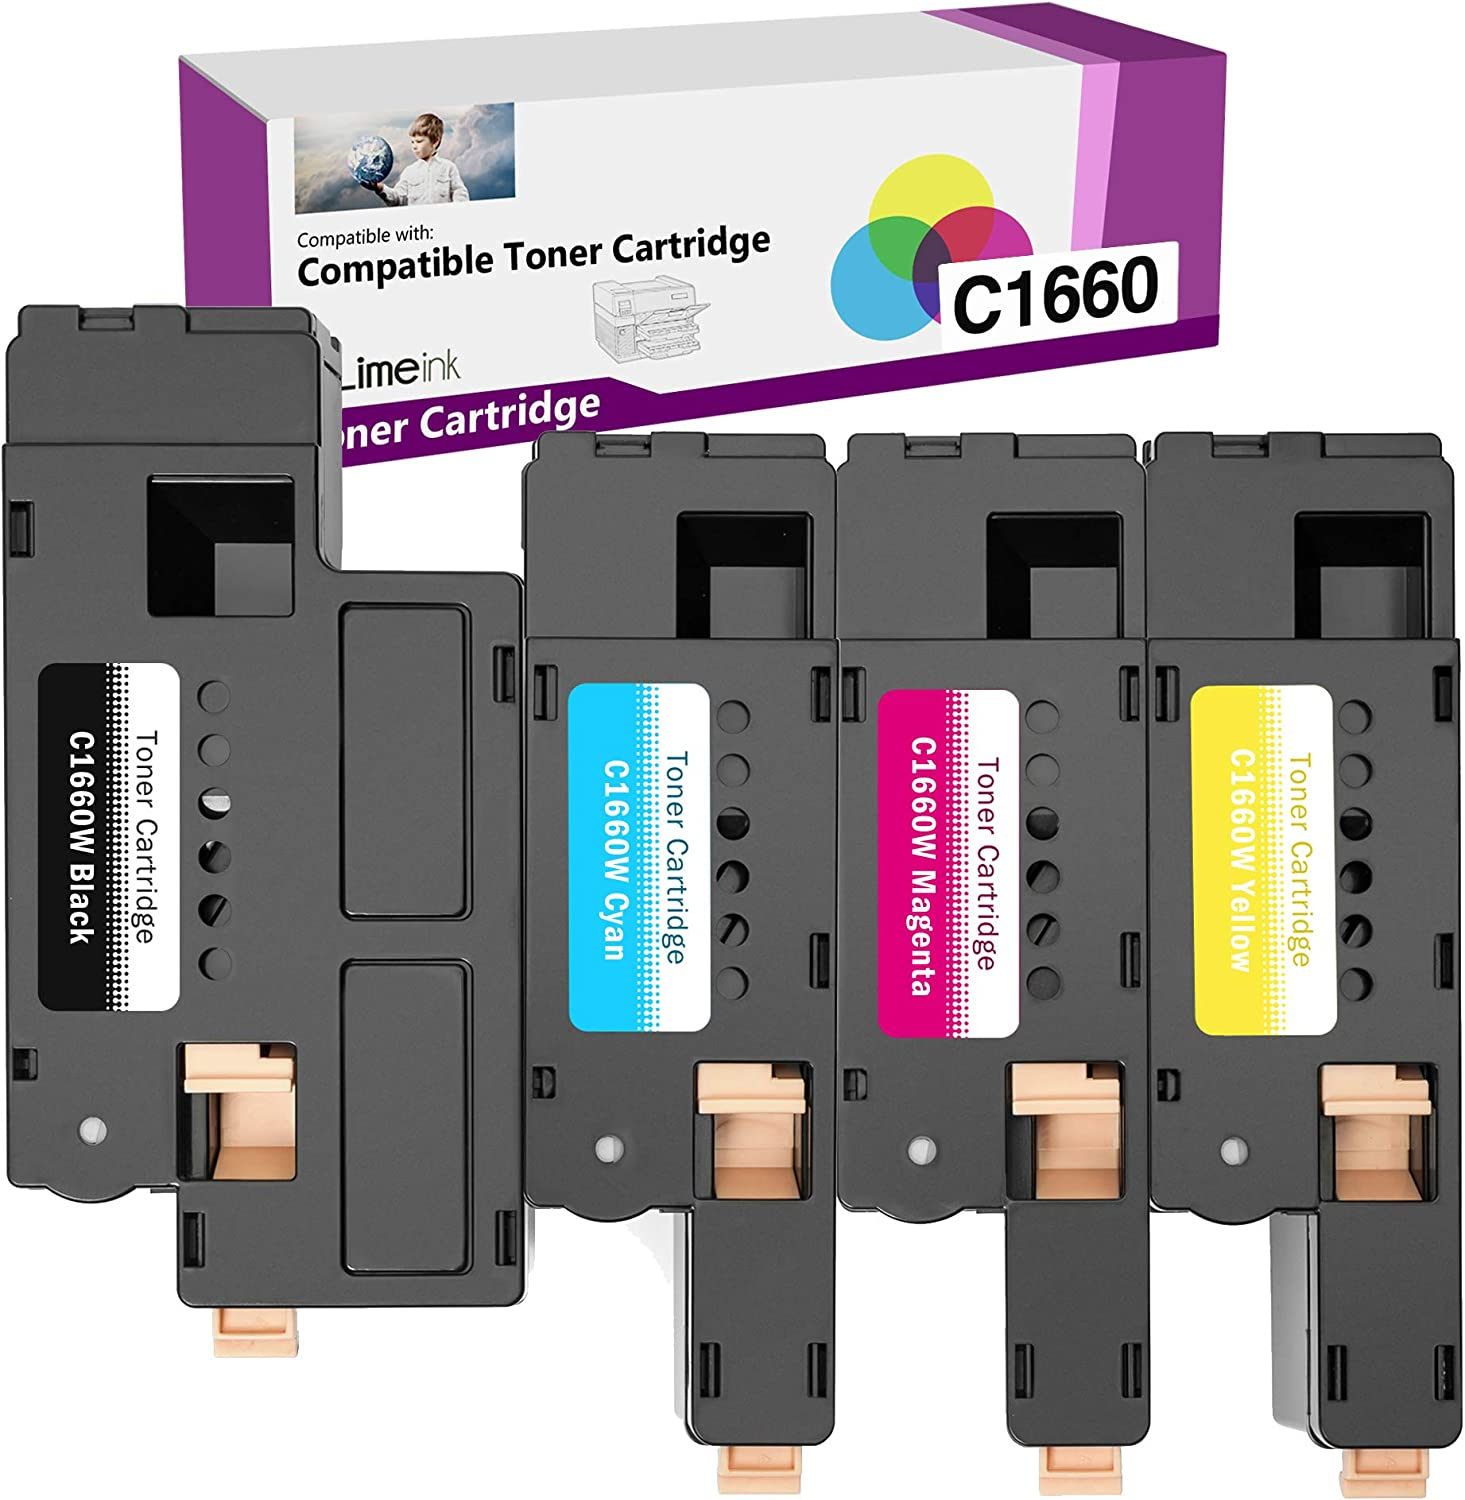 Limeink 4 Pack Compatible High Yield Laser Toner Cartridges Replacement for Dell C1660 4G9HP (1 Black, 1 Cyan, 1 Magenta, 1 Yellow) Compatible with C1660 C1660W C1660cnw 1660 1660W 1660cnw Printers